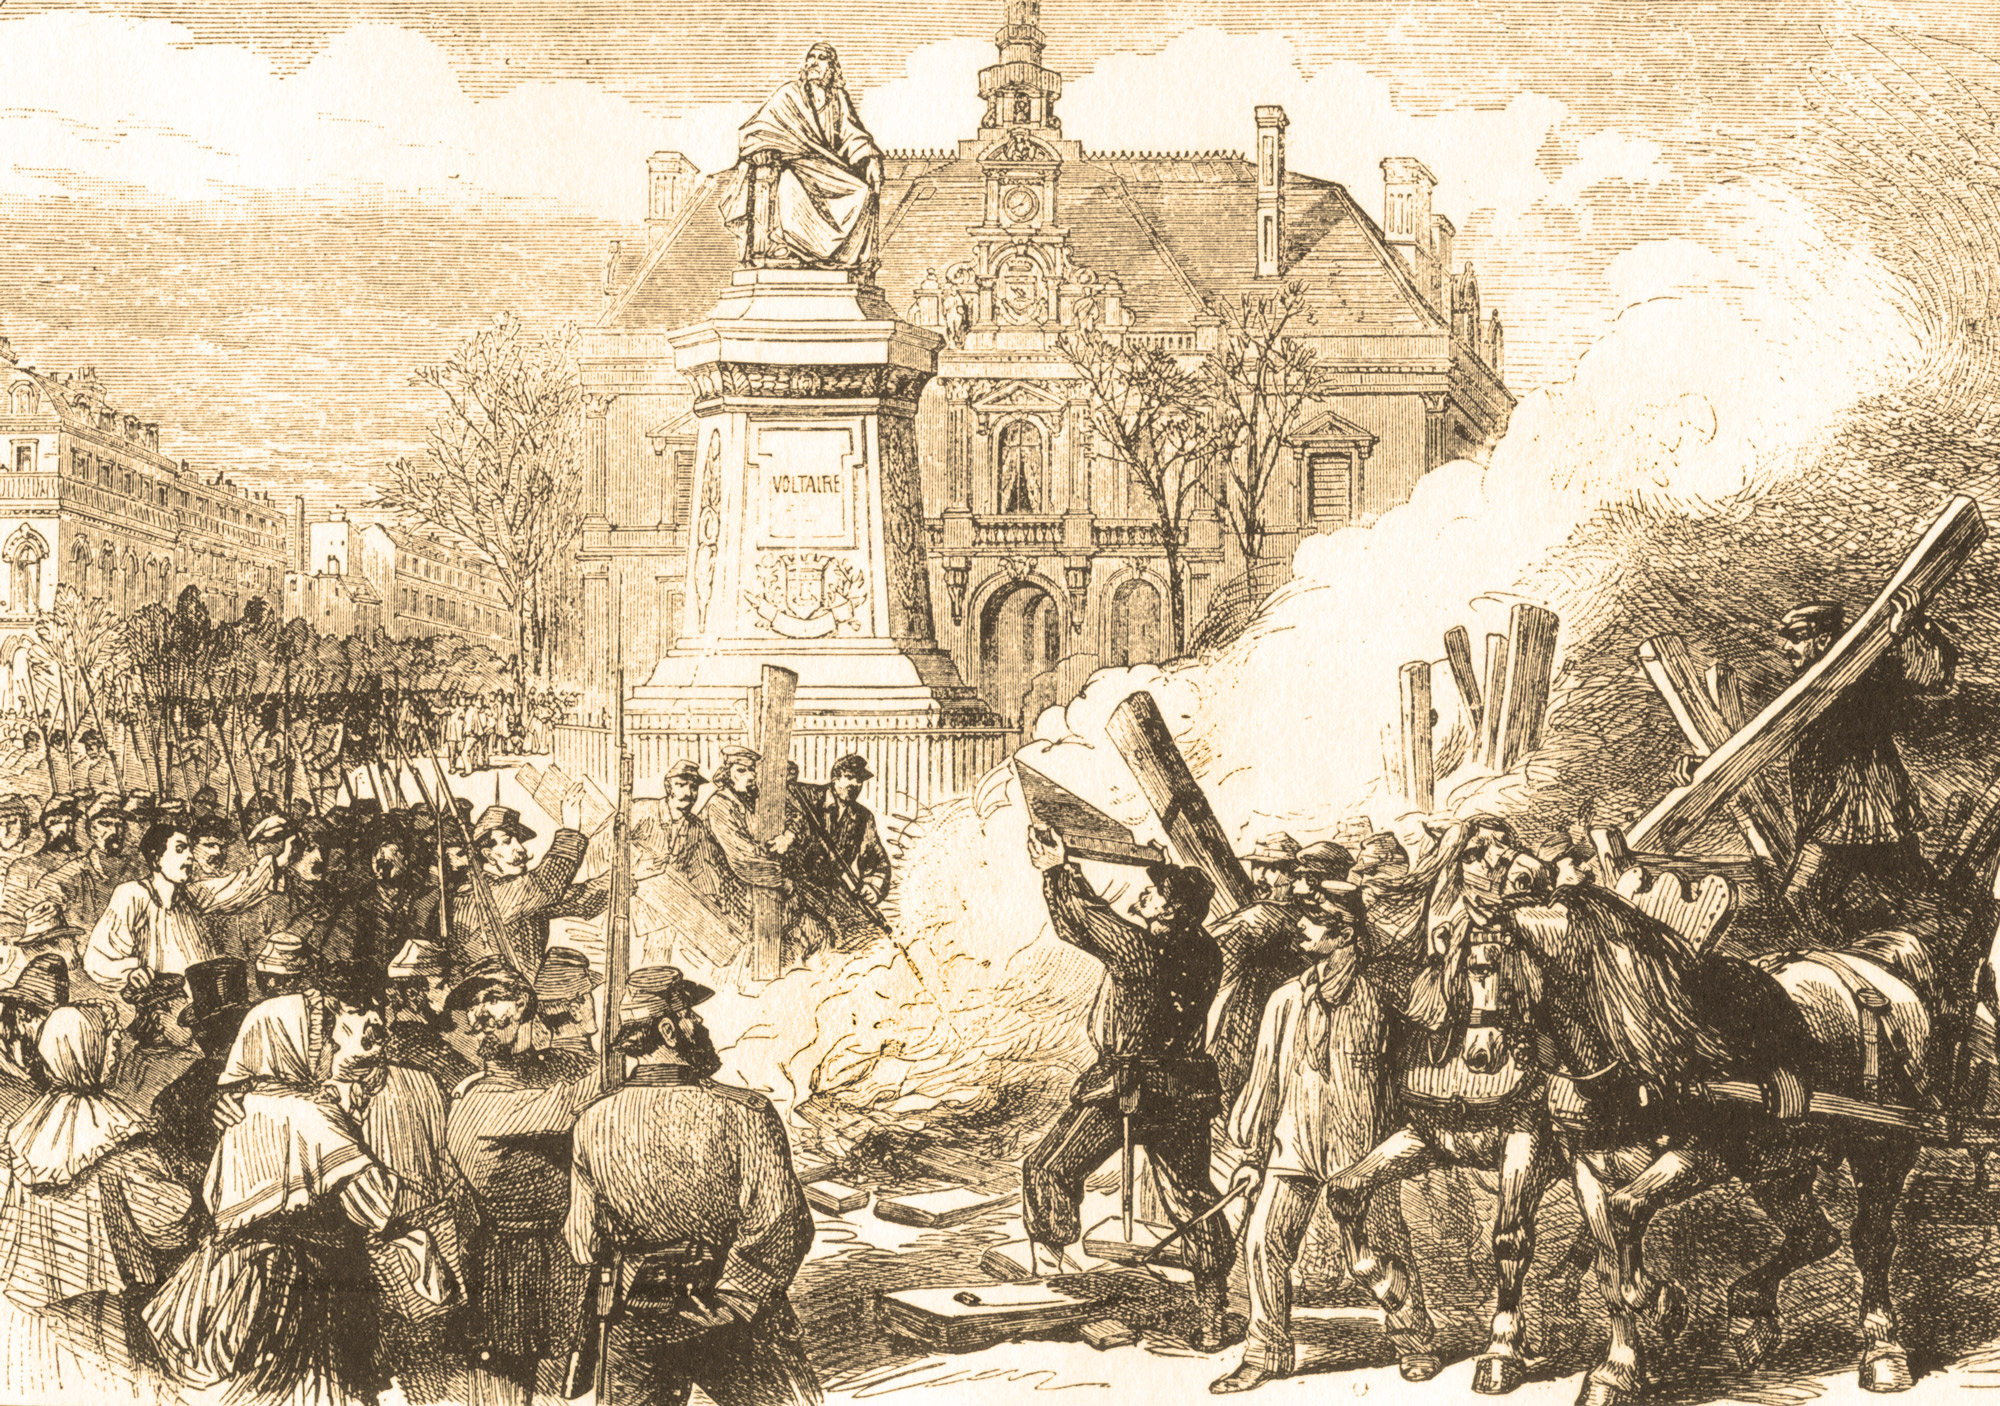 HARD CRACKERS- Against the Logic of the Guillotine: Why the Paris Commune Burned the Guillotine—and We Should Too